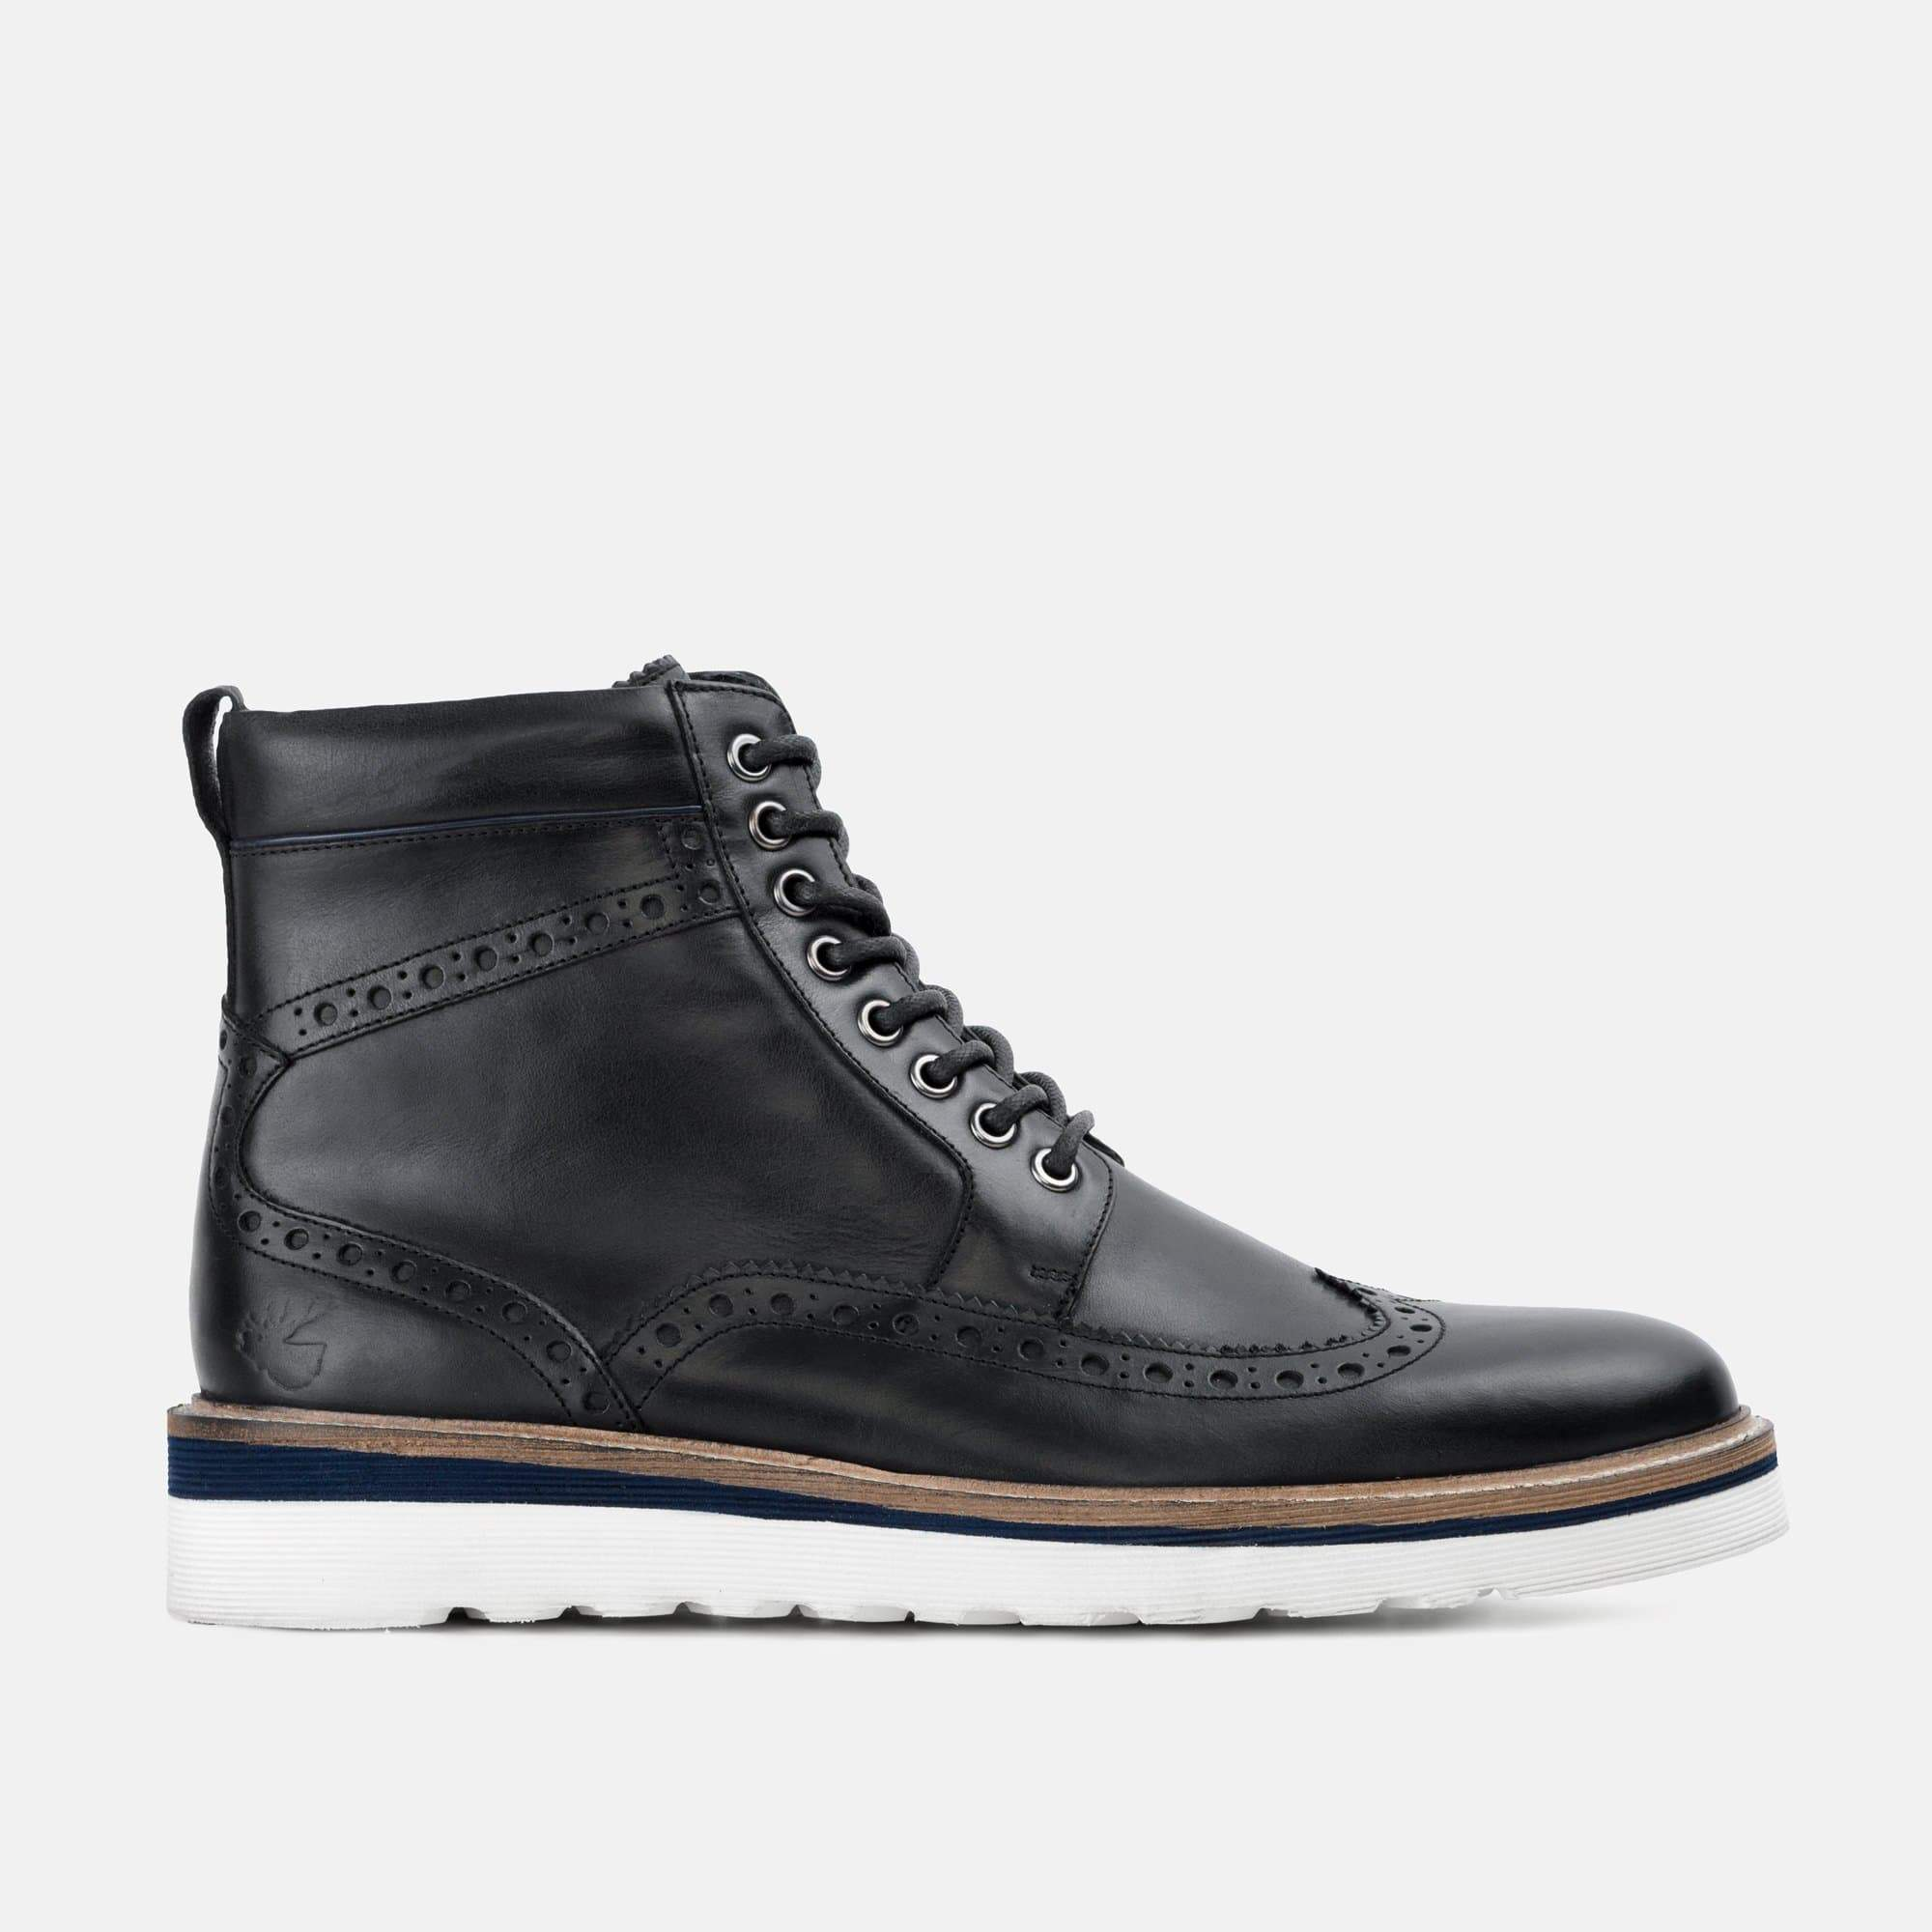 Goodwin Smith Footwear Linton Black Casual Leather Brogue Boot